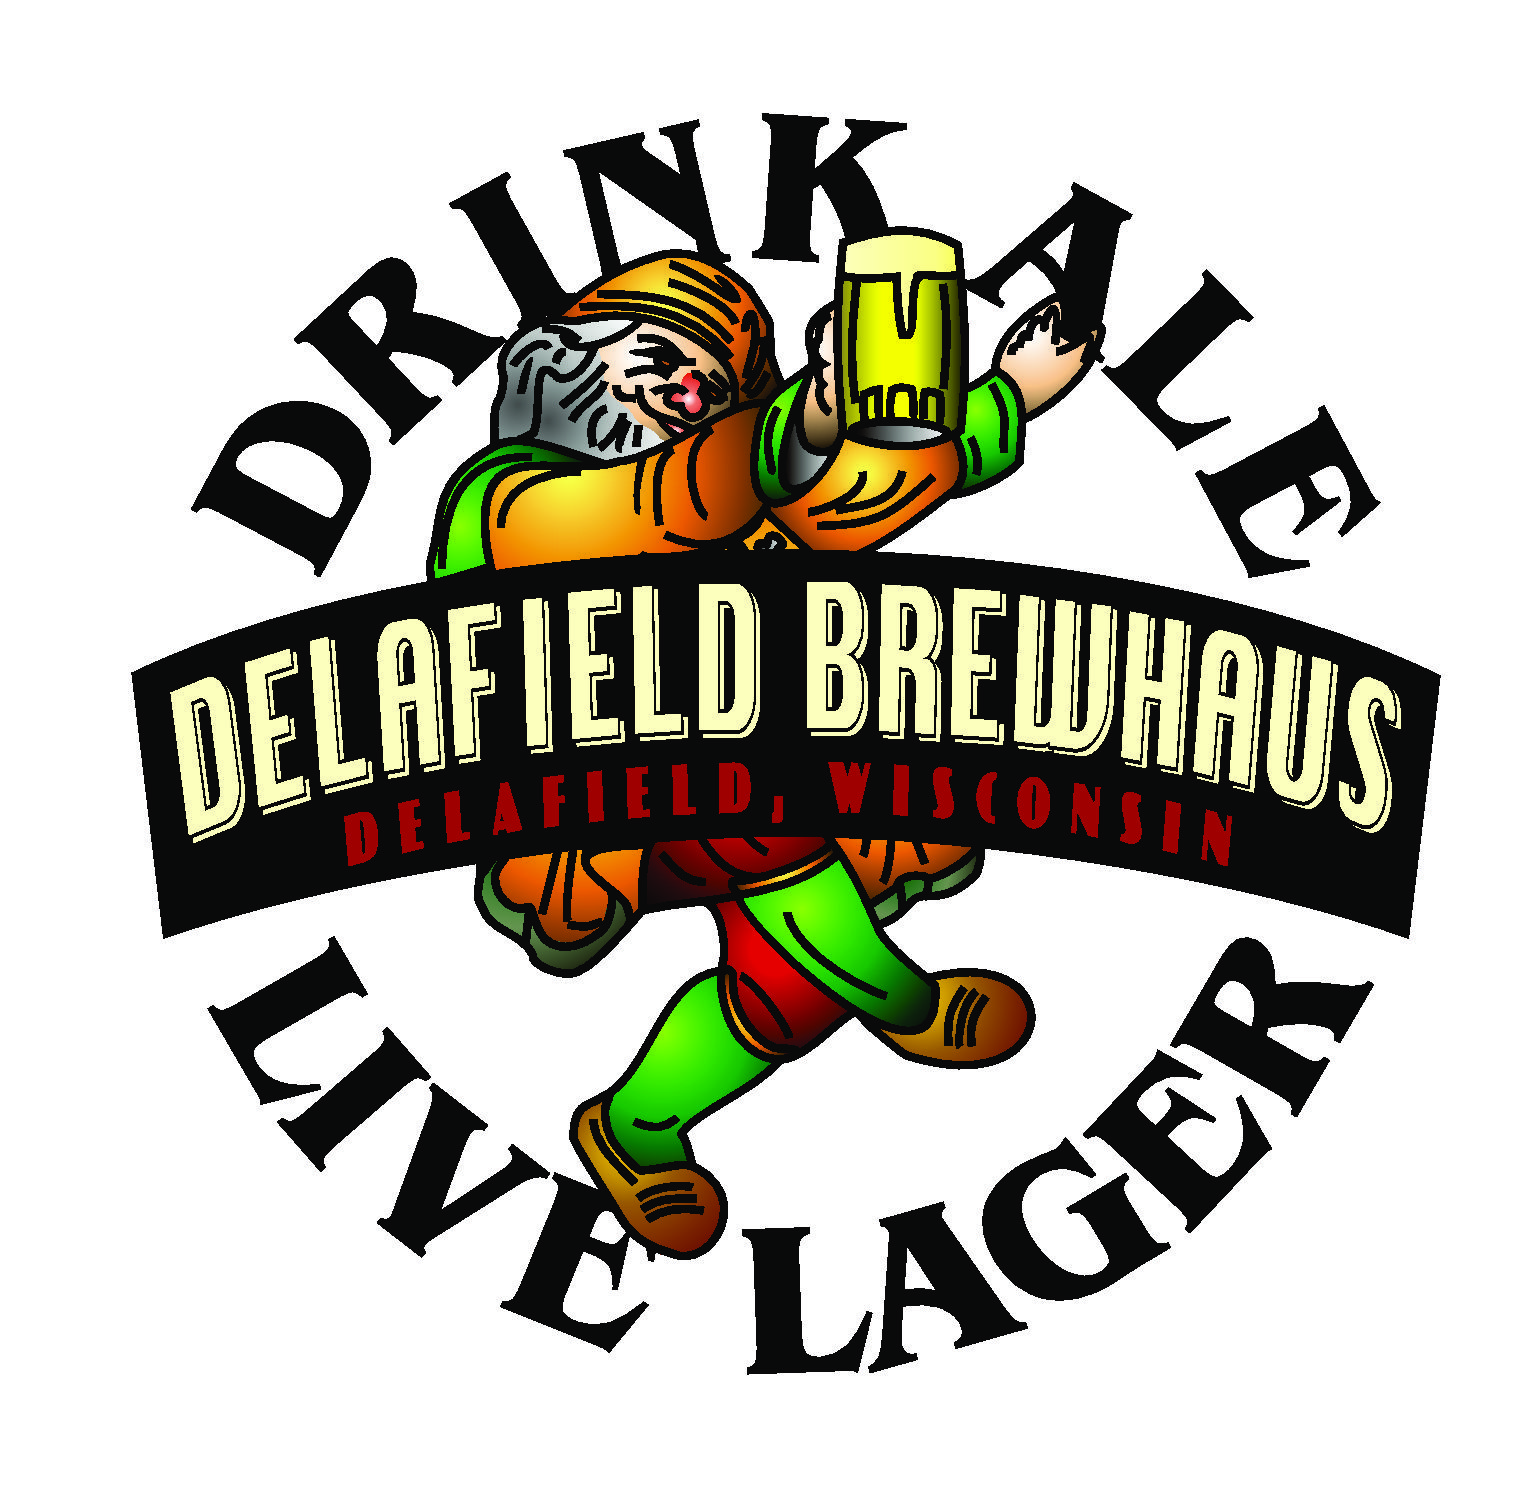 Delafield Brewhaus, Restaurant,  Weddings, Banquets